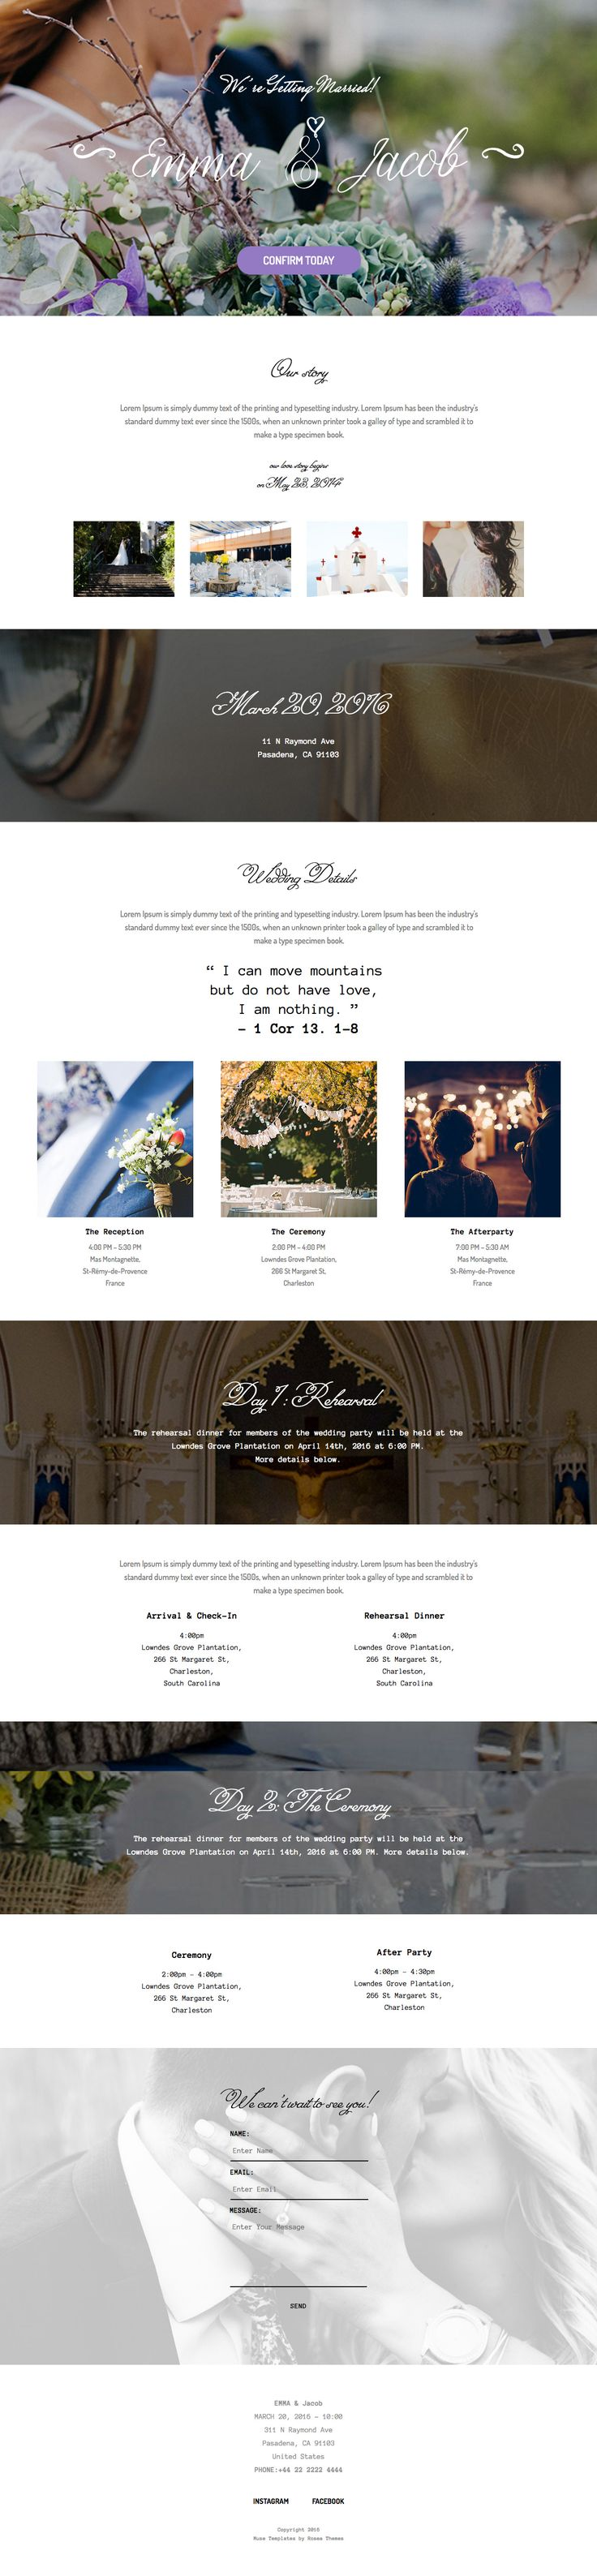 Wedding Template Adobe Muse #wedding #template #website #theme